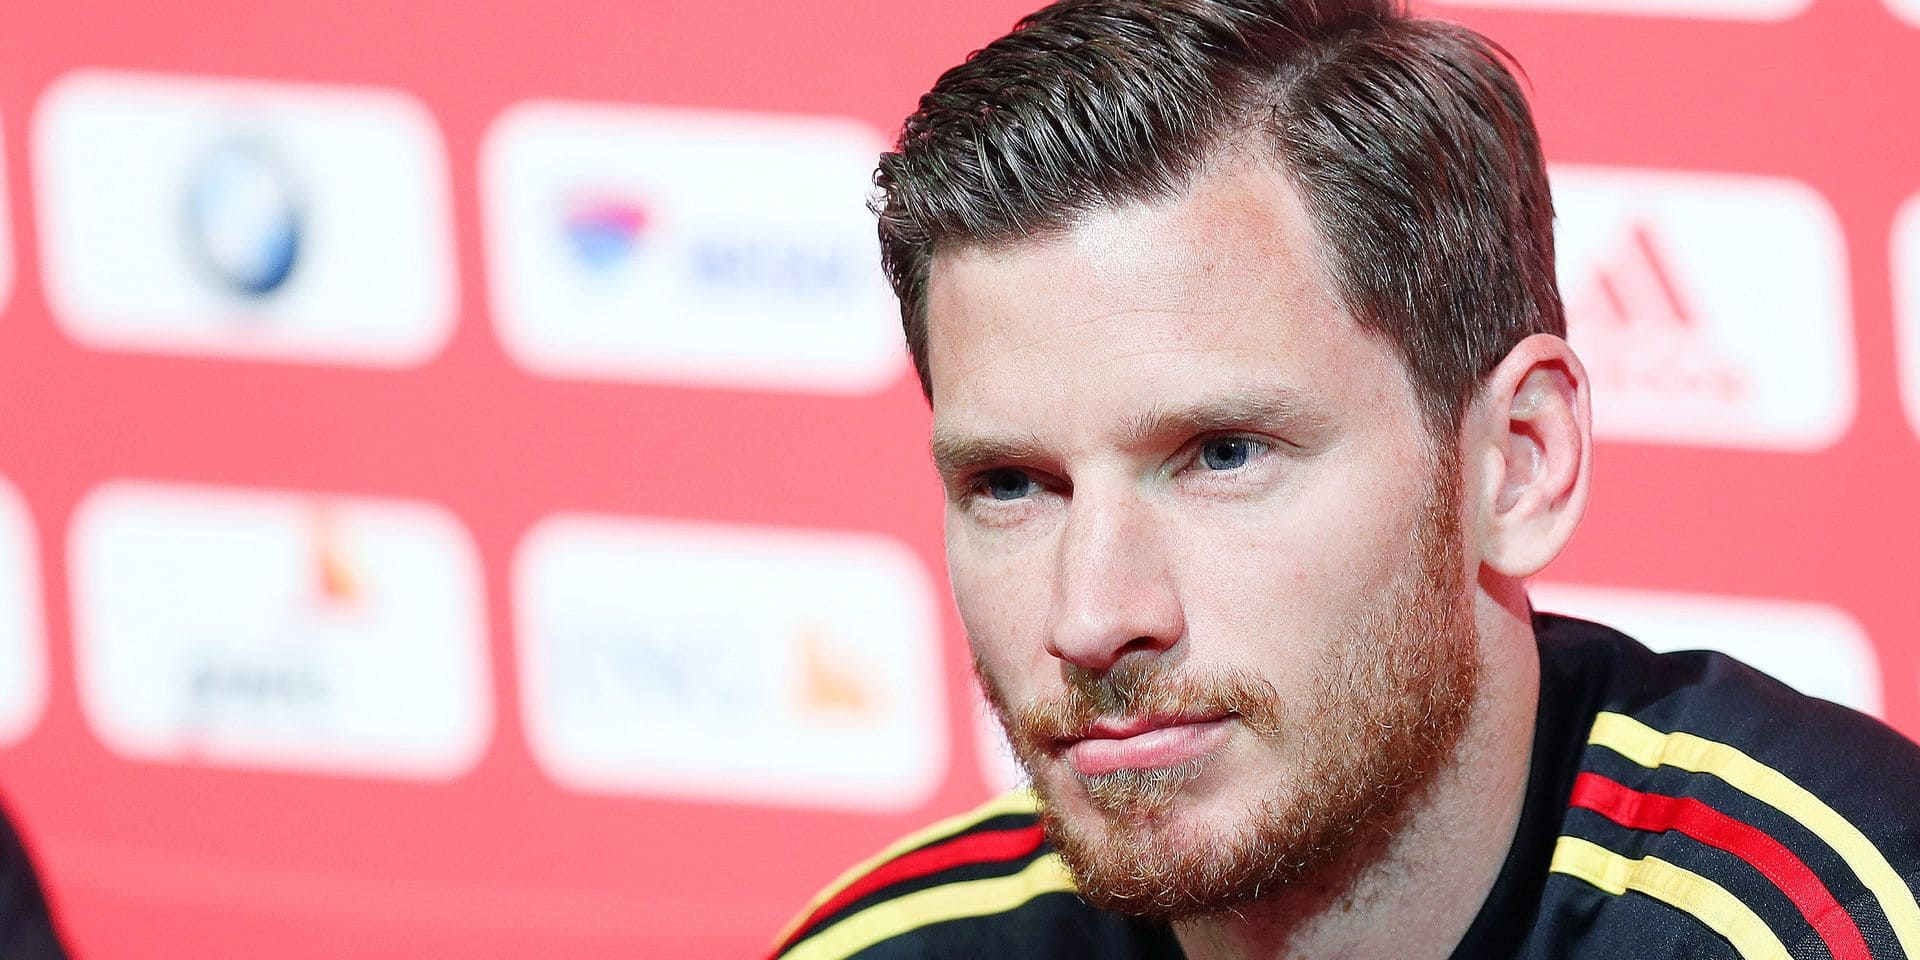 Belgium's Jan Vertonghen pictured during a press conference of Belgian national soccer team Red Devils, Wednesday 20 March 2019 in Tubize. The team is preparing two European Cup 2020 qualification games against Russia tomorrow in Belgium and in Cyprus against Cyprus. BELGA PHOTO BRUNO FAHY